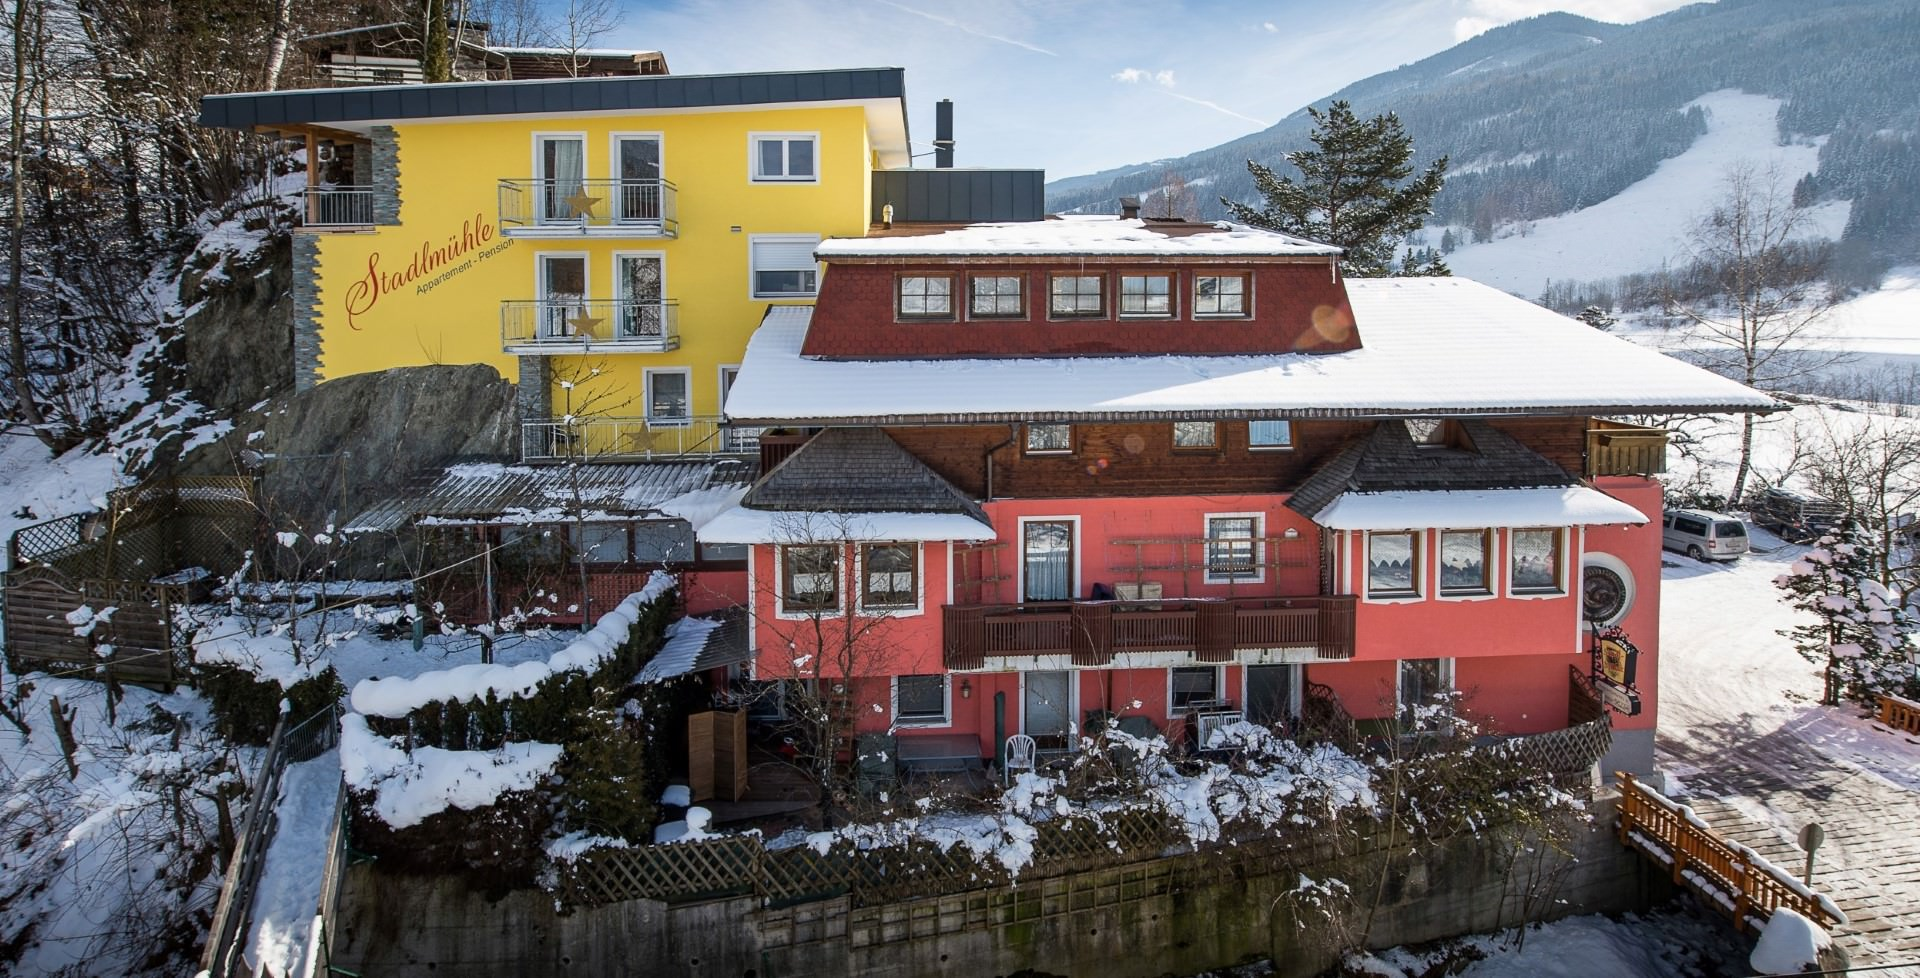 Appartement-Pension Stadlmühle in Bruck am Großglockner, Appartement-Pension Stadlmühle / Österreich